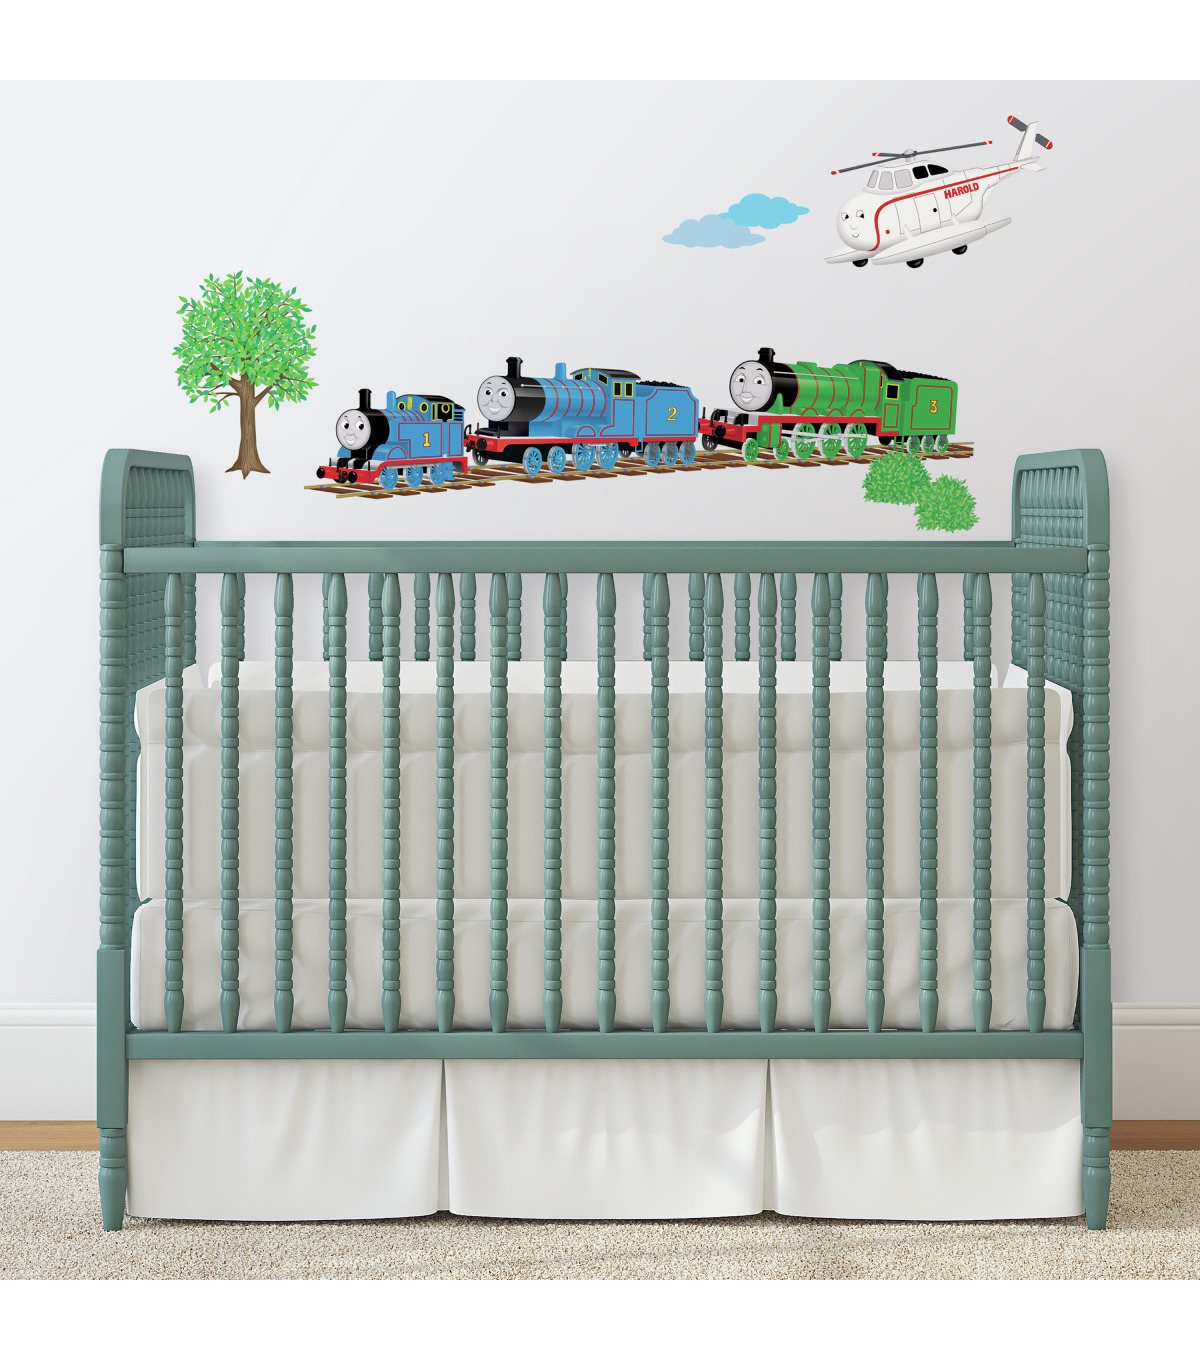 York Wallcoverings Peel & Stick Wall Decals-Thomas & Friends